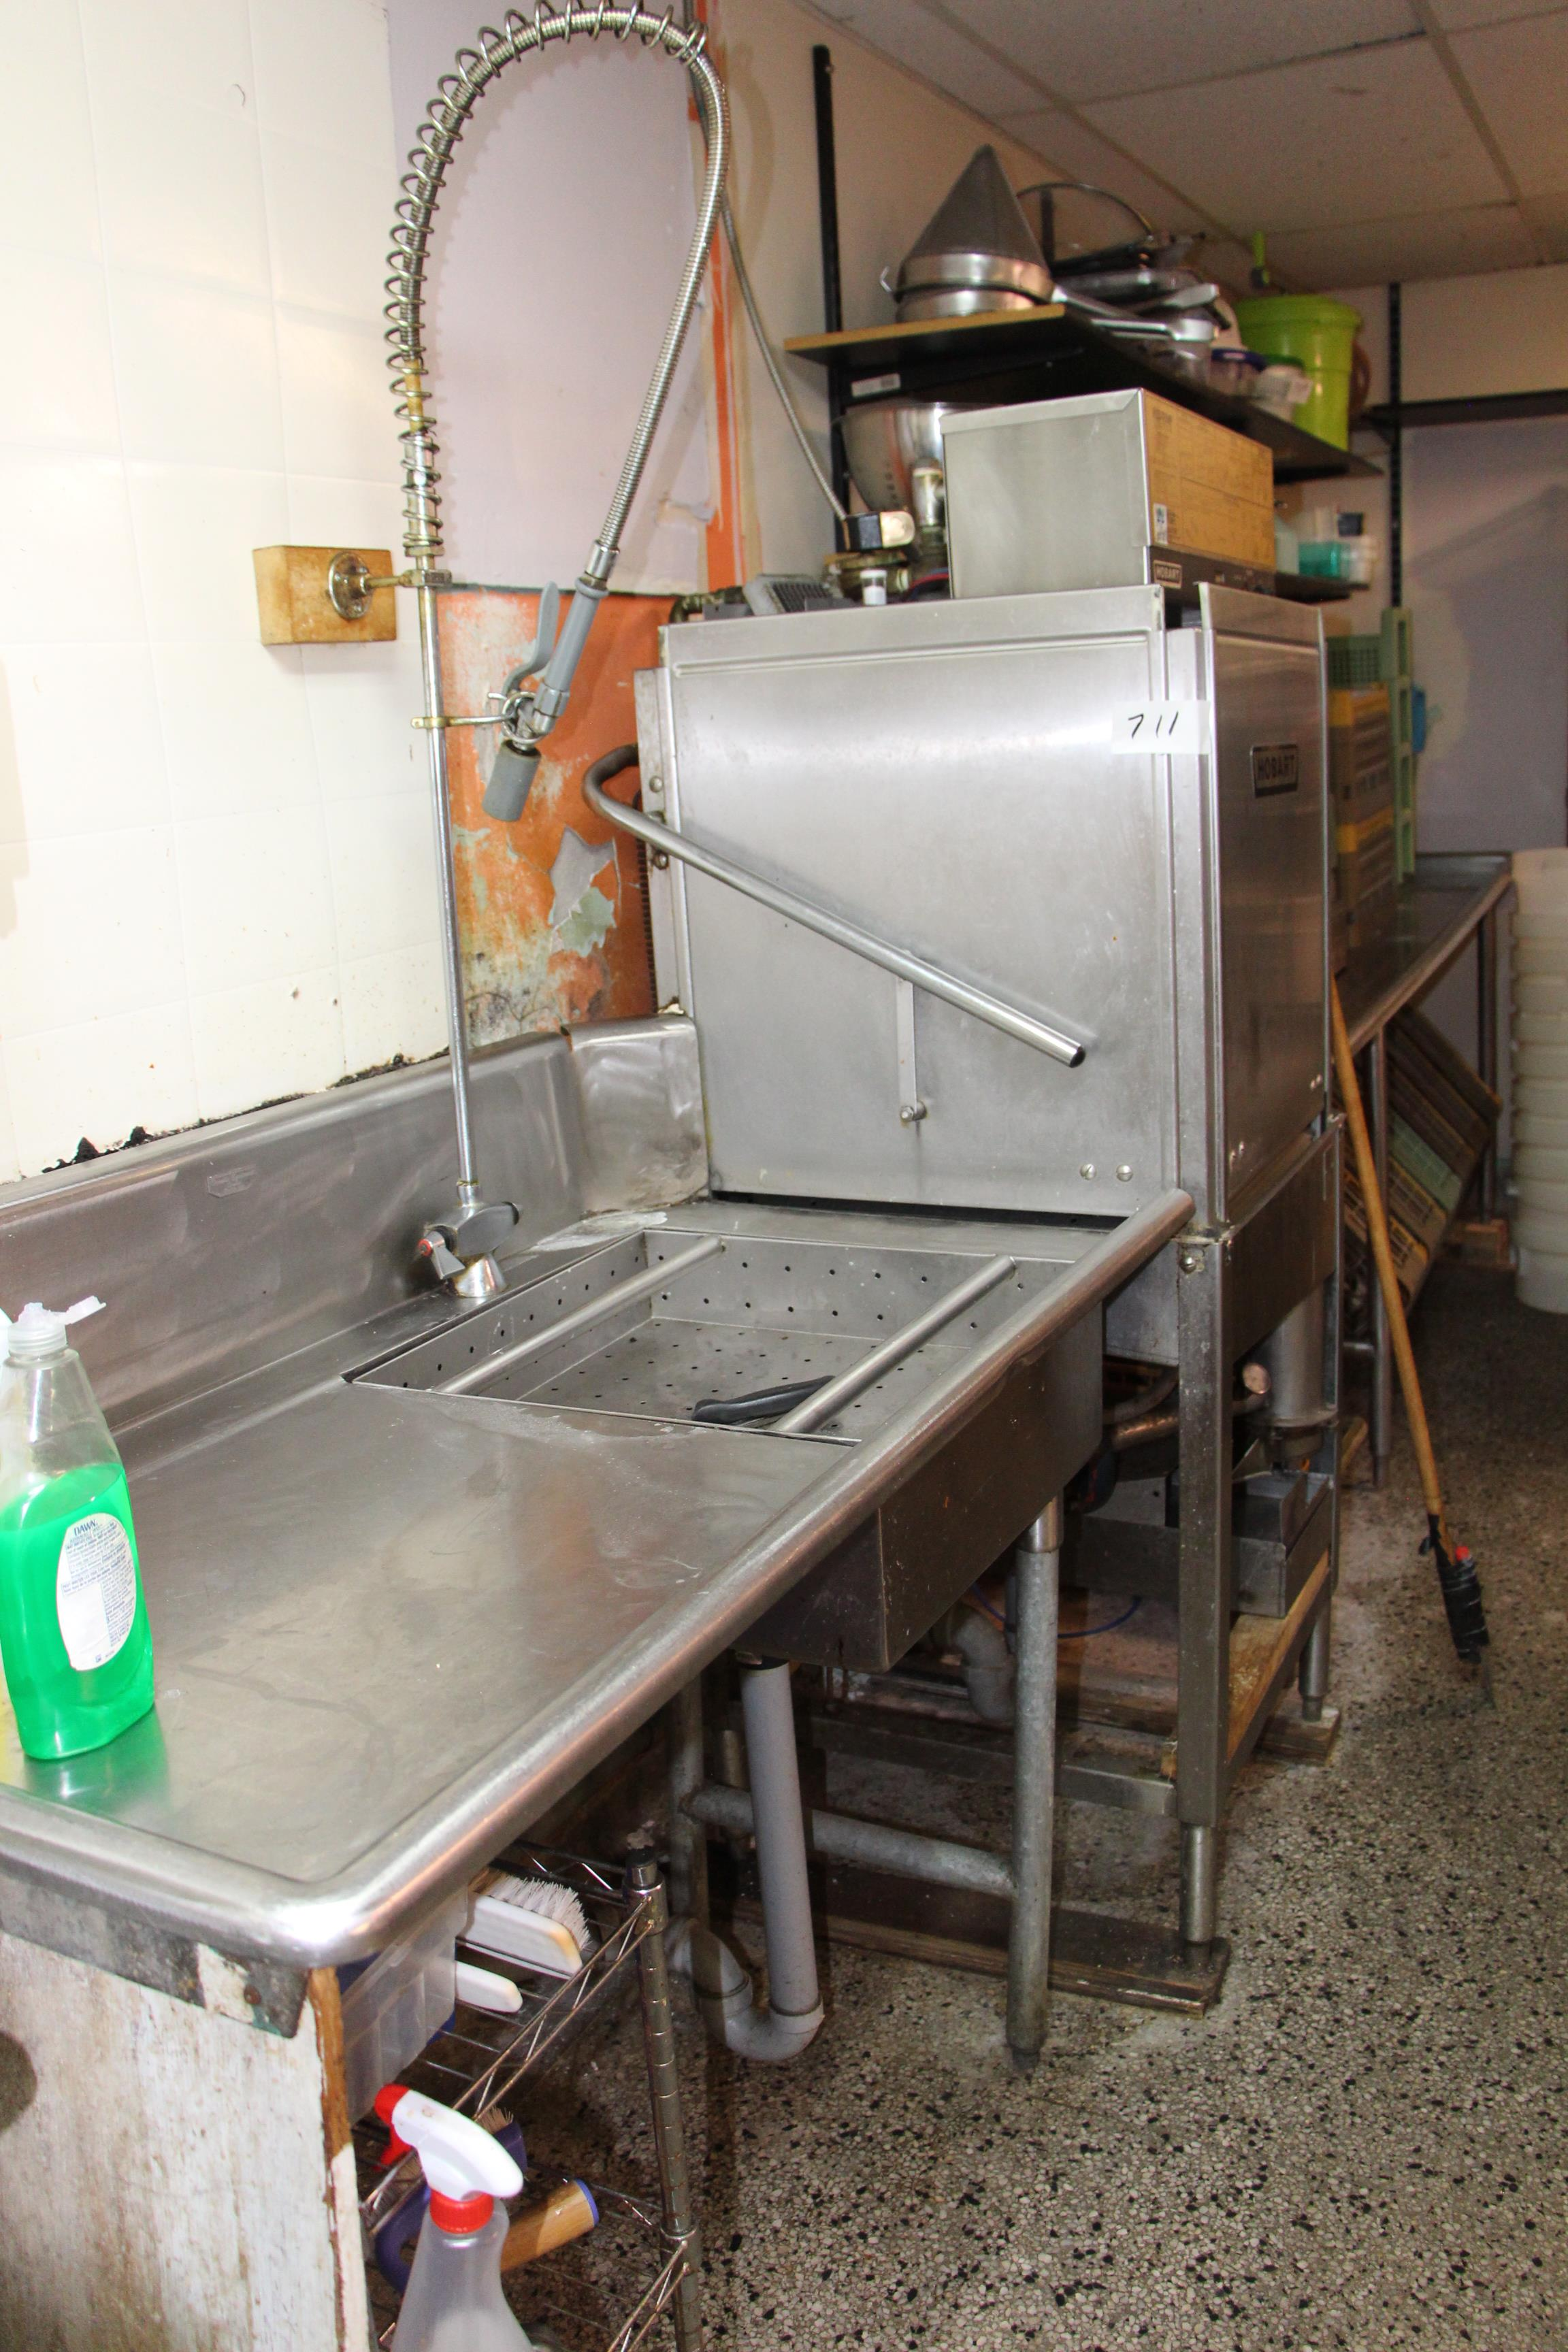 Lot 711 - Hobart pass thru dishwasher c/w infeed s/s table and outflow s/s table w/sink and sprayer